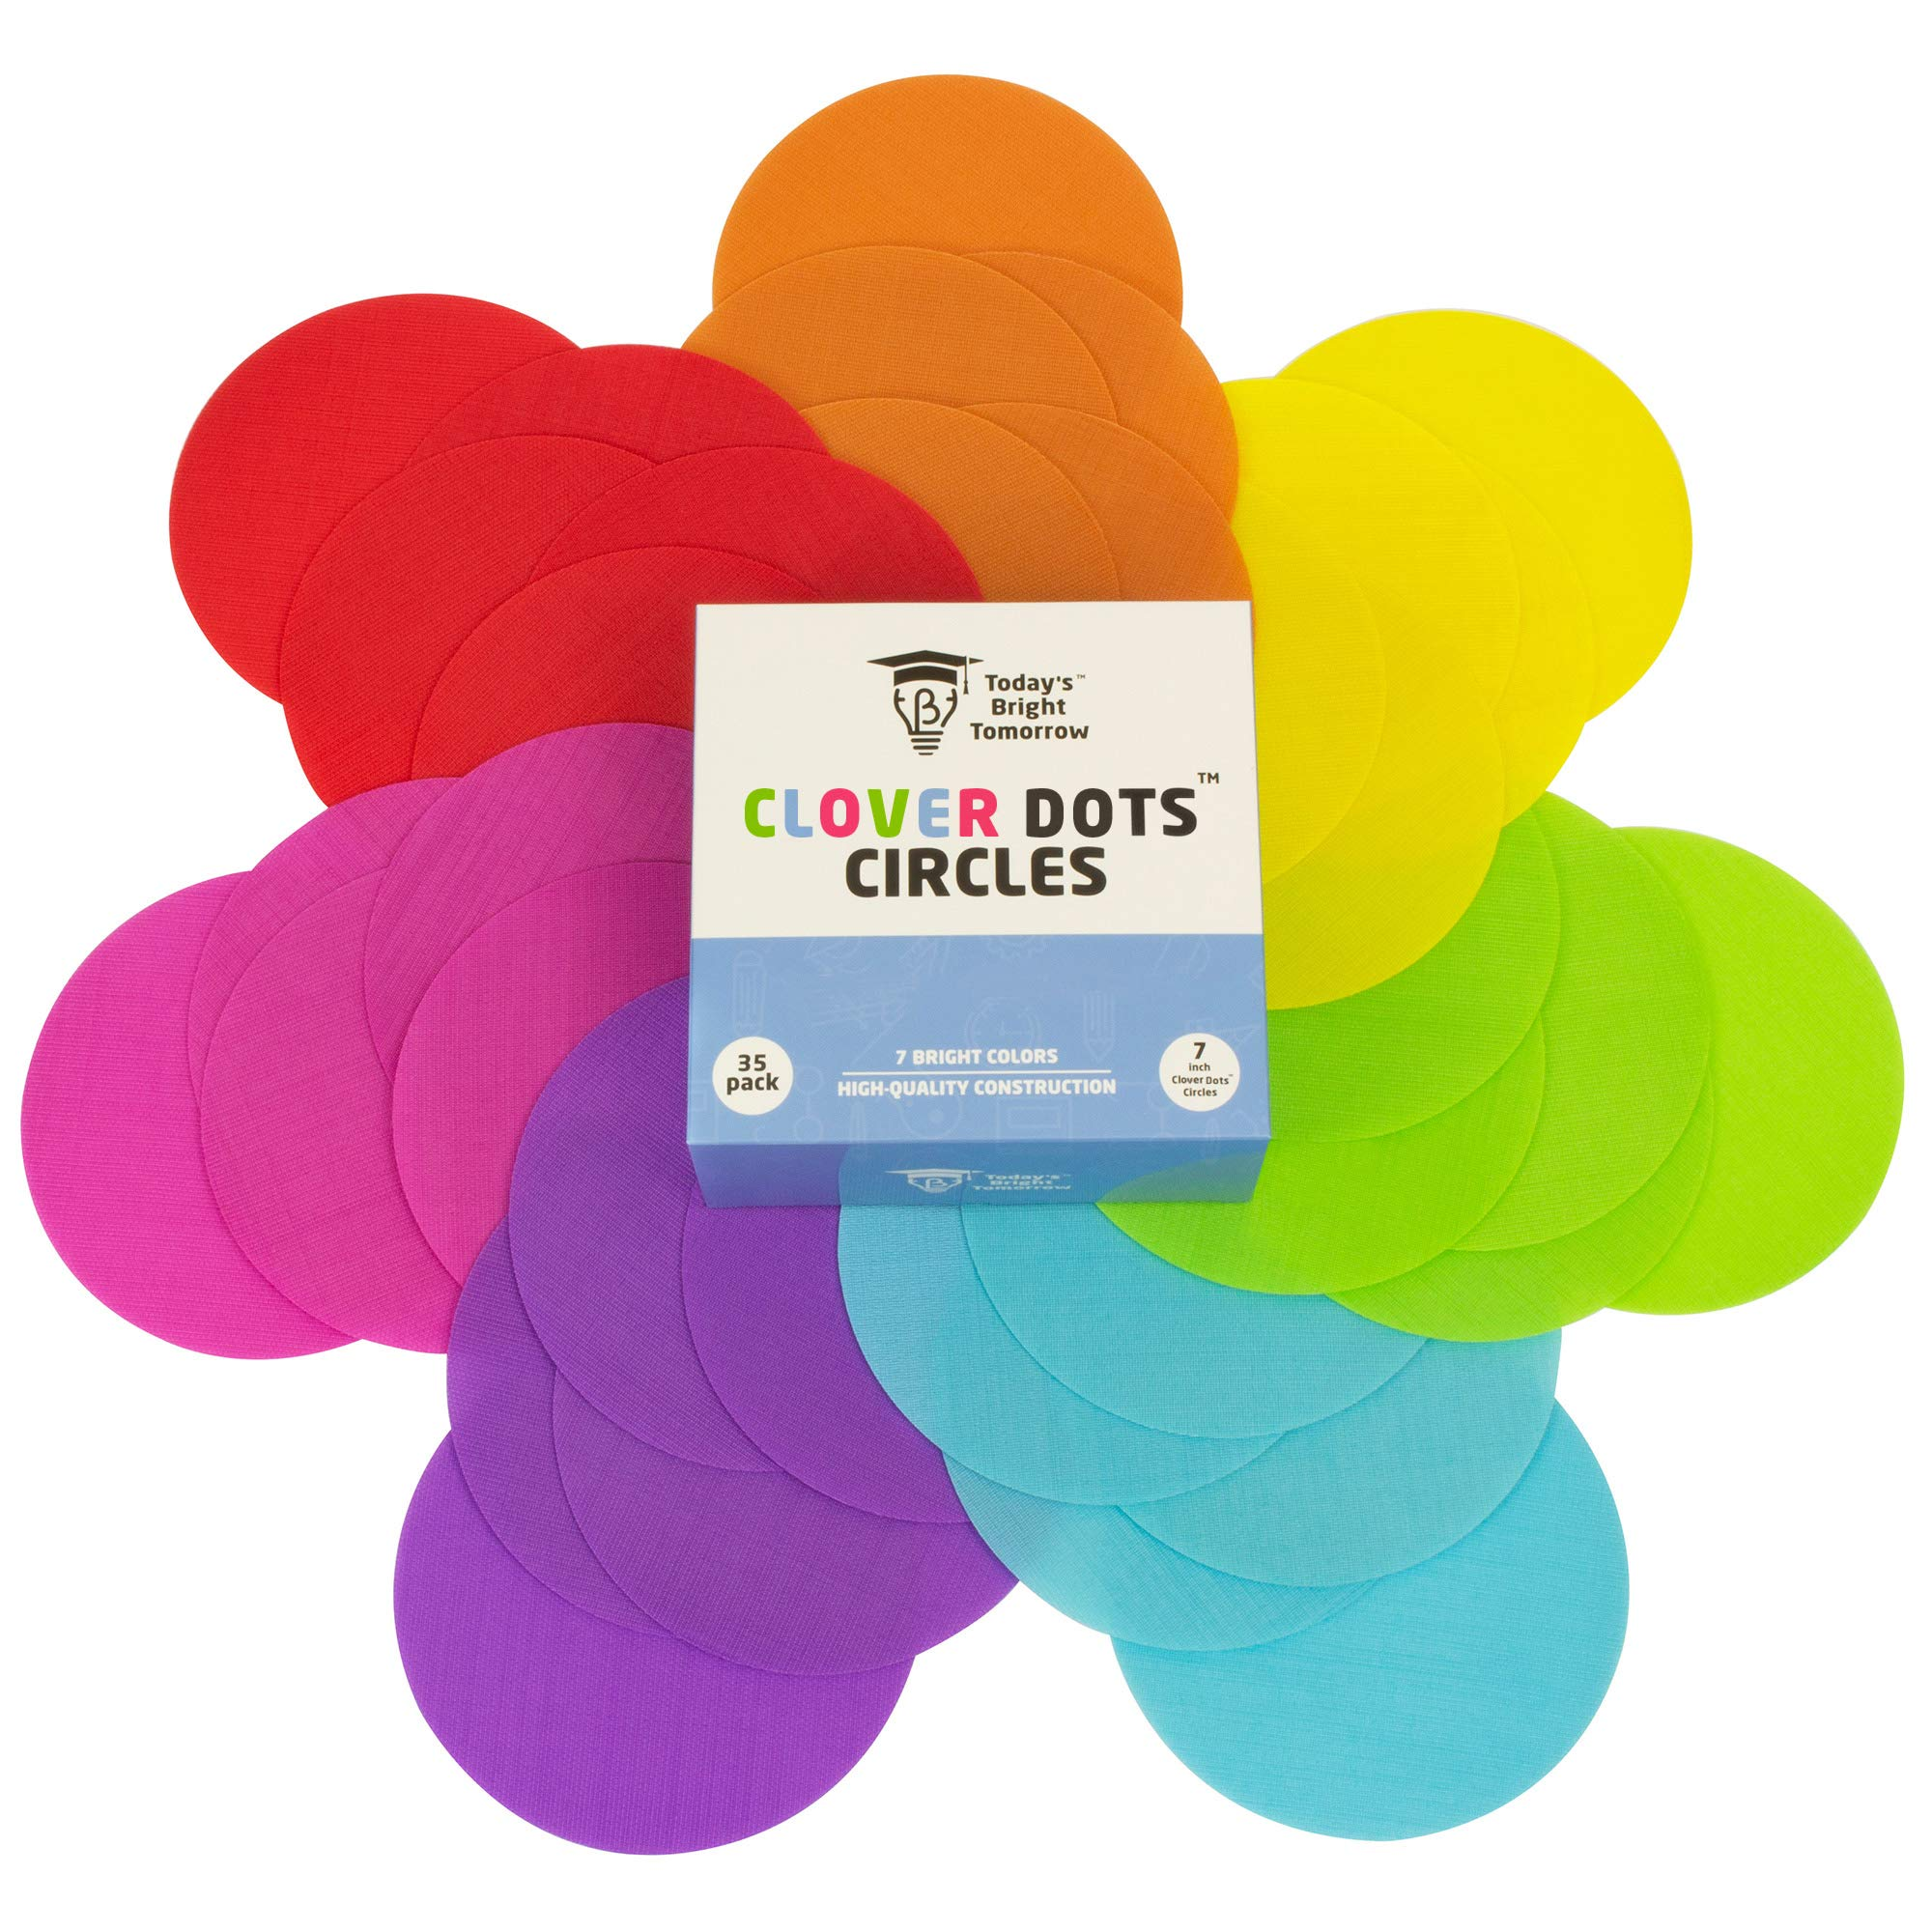 CLOVER DOTS, 7 inch Large Carpet Spot Circles, 35 Sitting Markers per Pack for Teachers and Children in Kindergarten and Preschool Classrooms, 7 Bright Colors